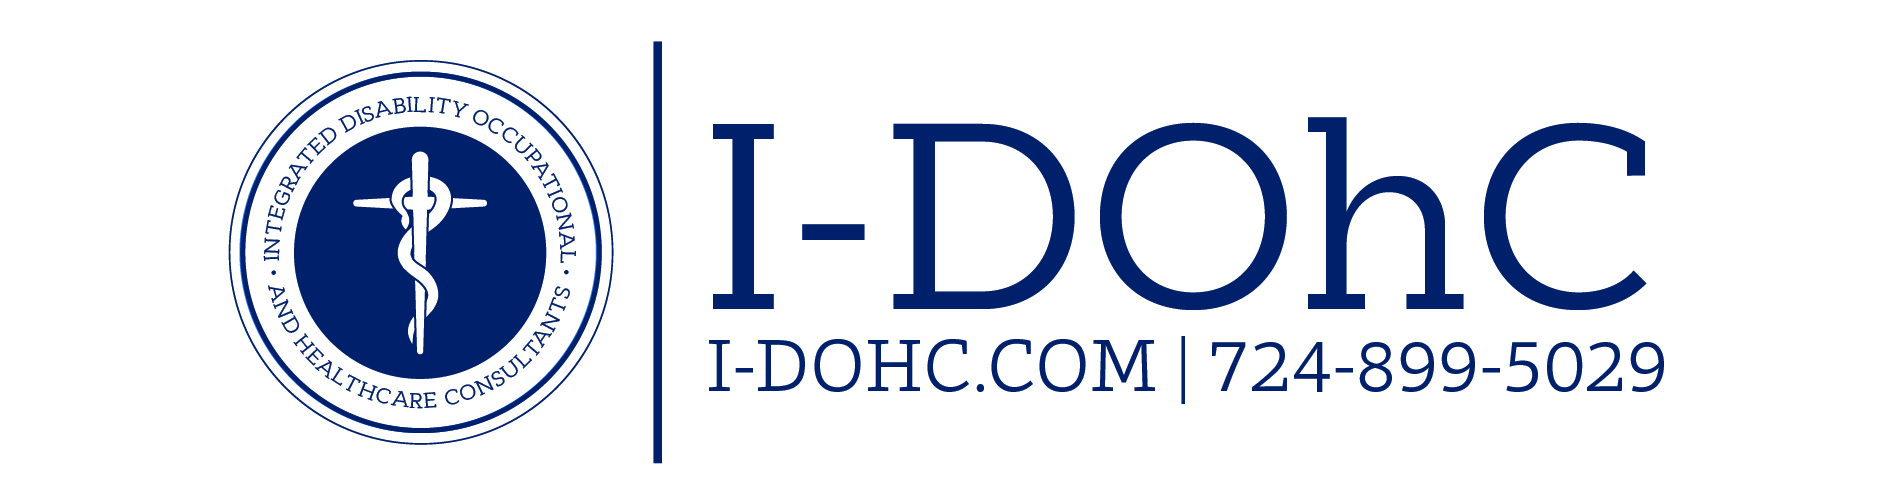 Thank you to  IDOhC   for your generous and thoughtful sponsorship.